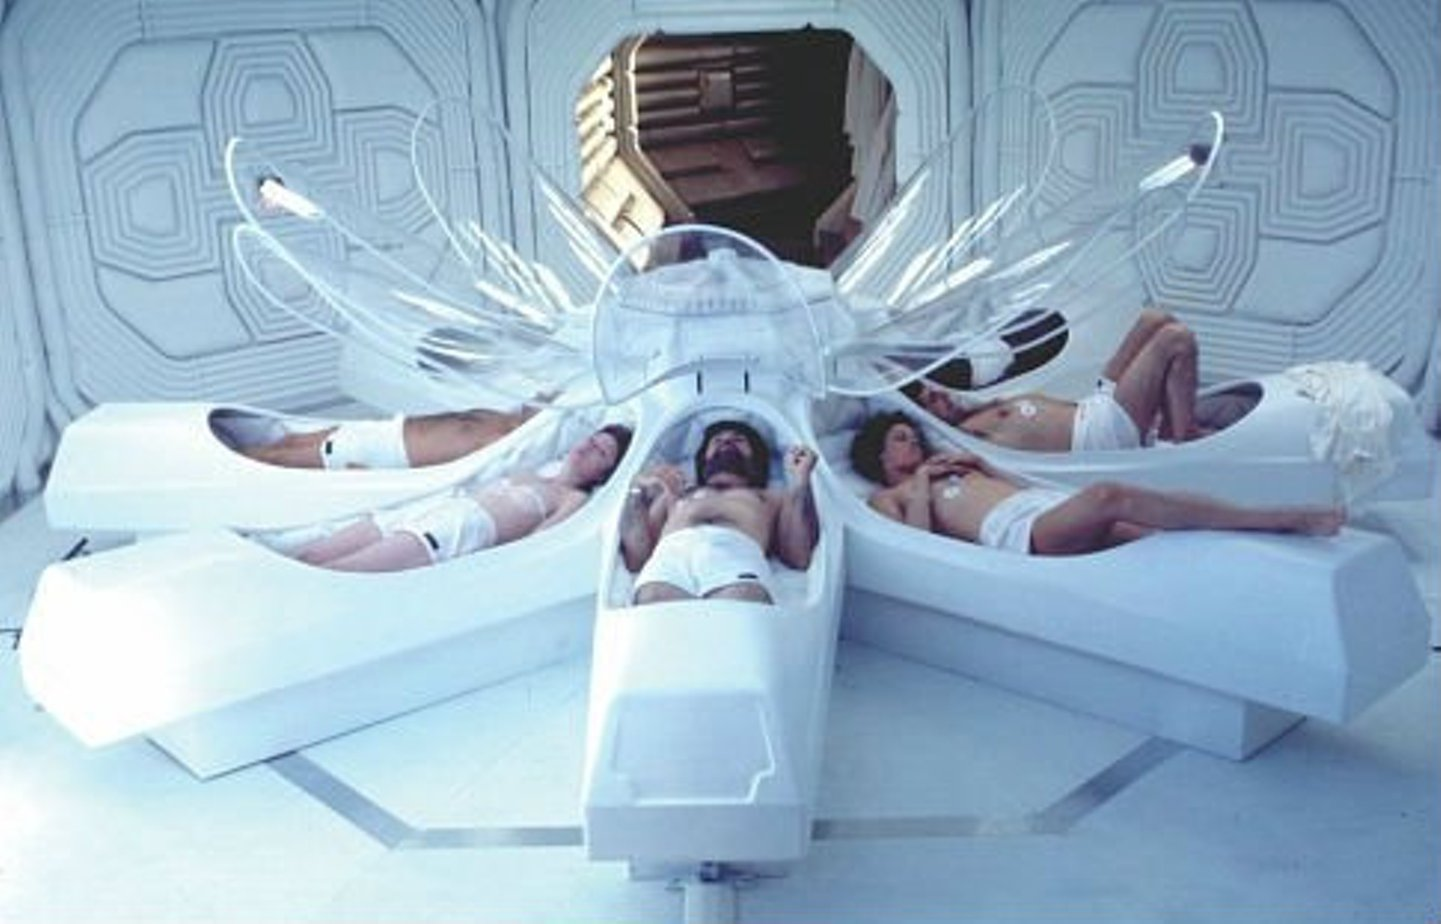 The crew of the Nostromo awake from cryogenic hypersleep in Alien (1979)